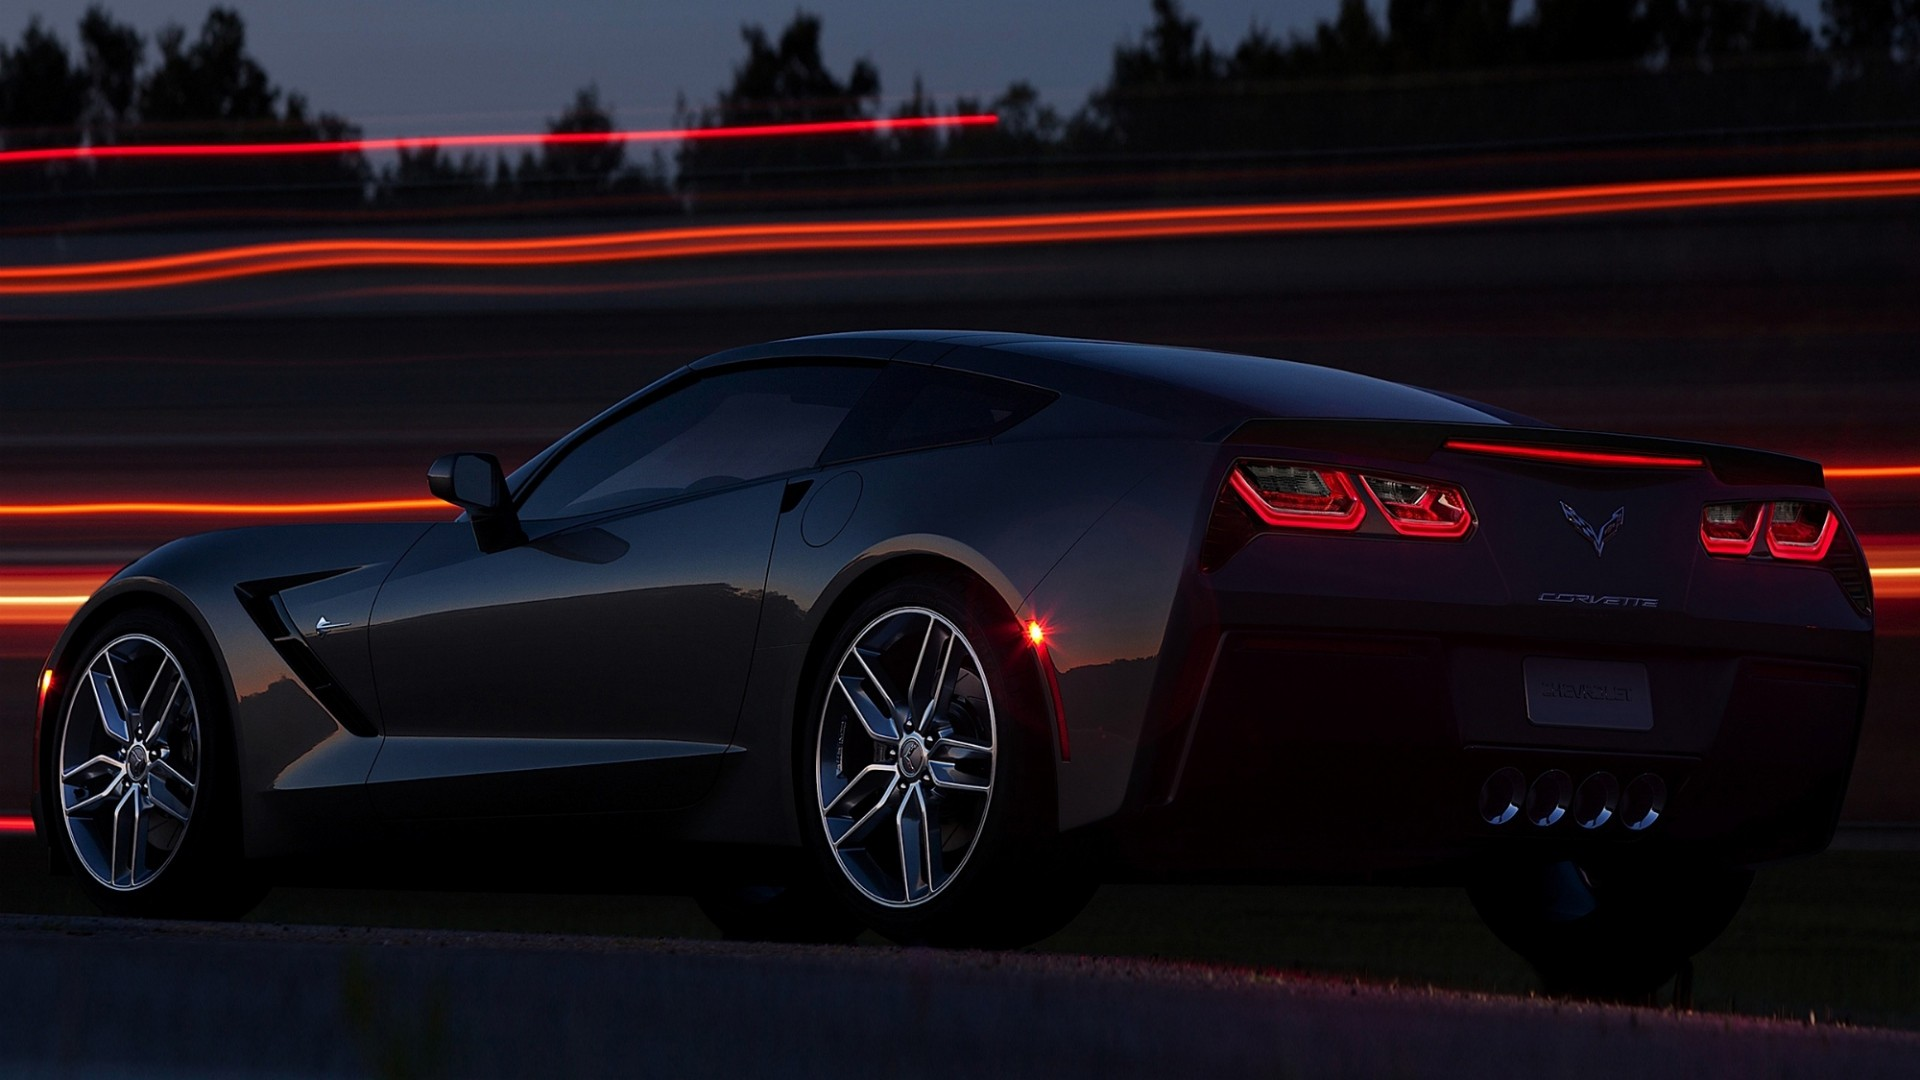 65+ HD Car wallpapers ·① Download free stunning ...